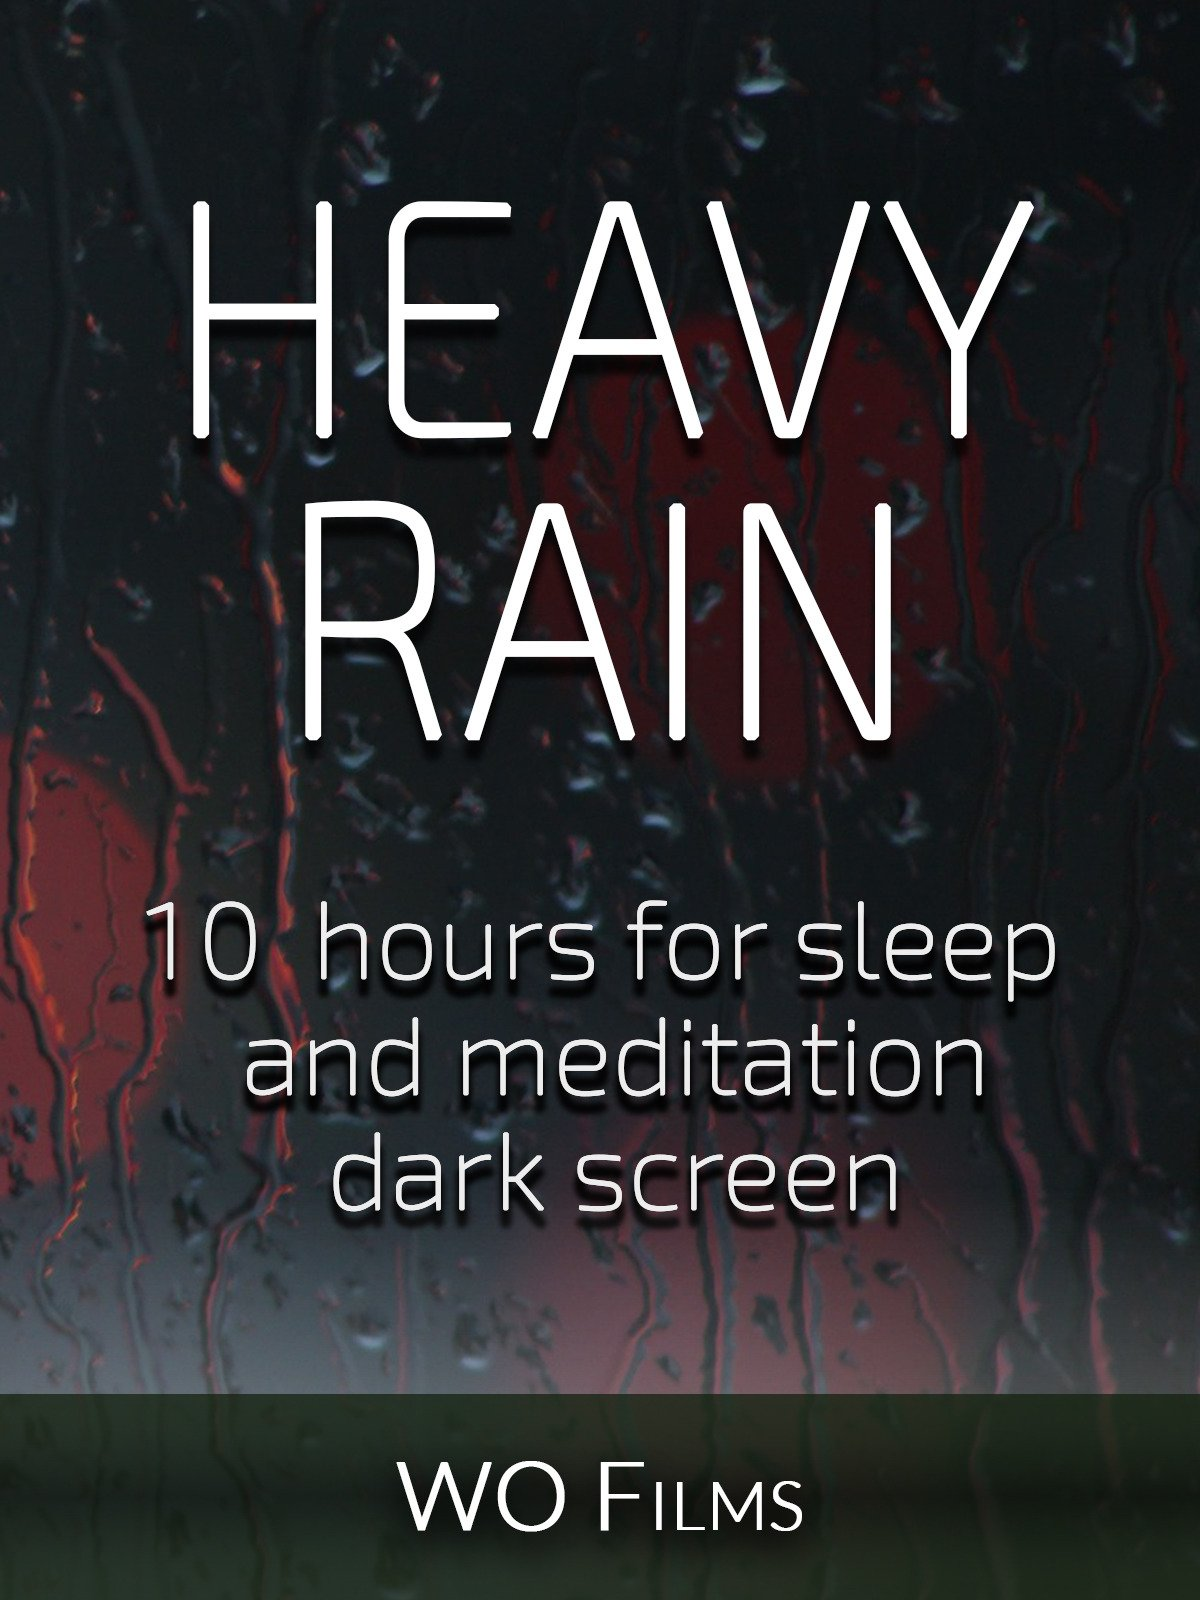 Heavy rain, 10 hours for Sleep and Meditation, dark screen